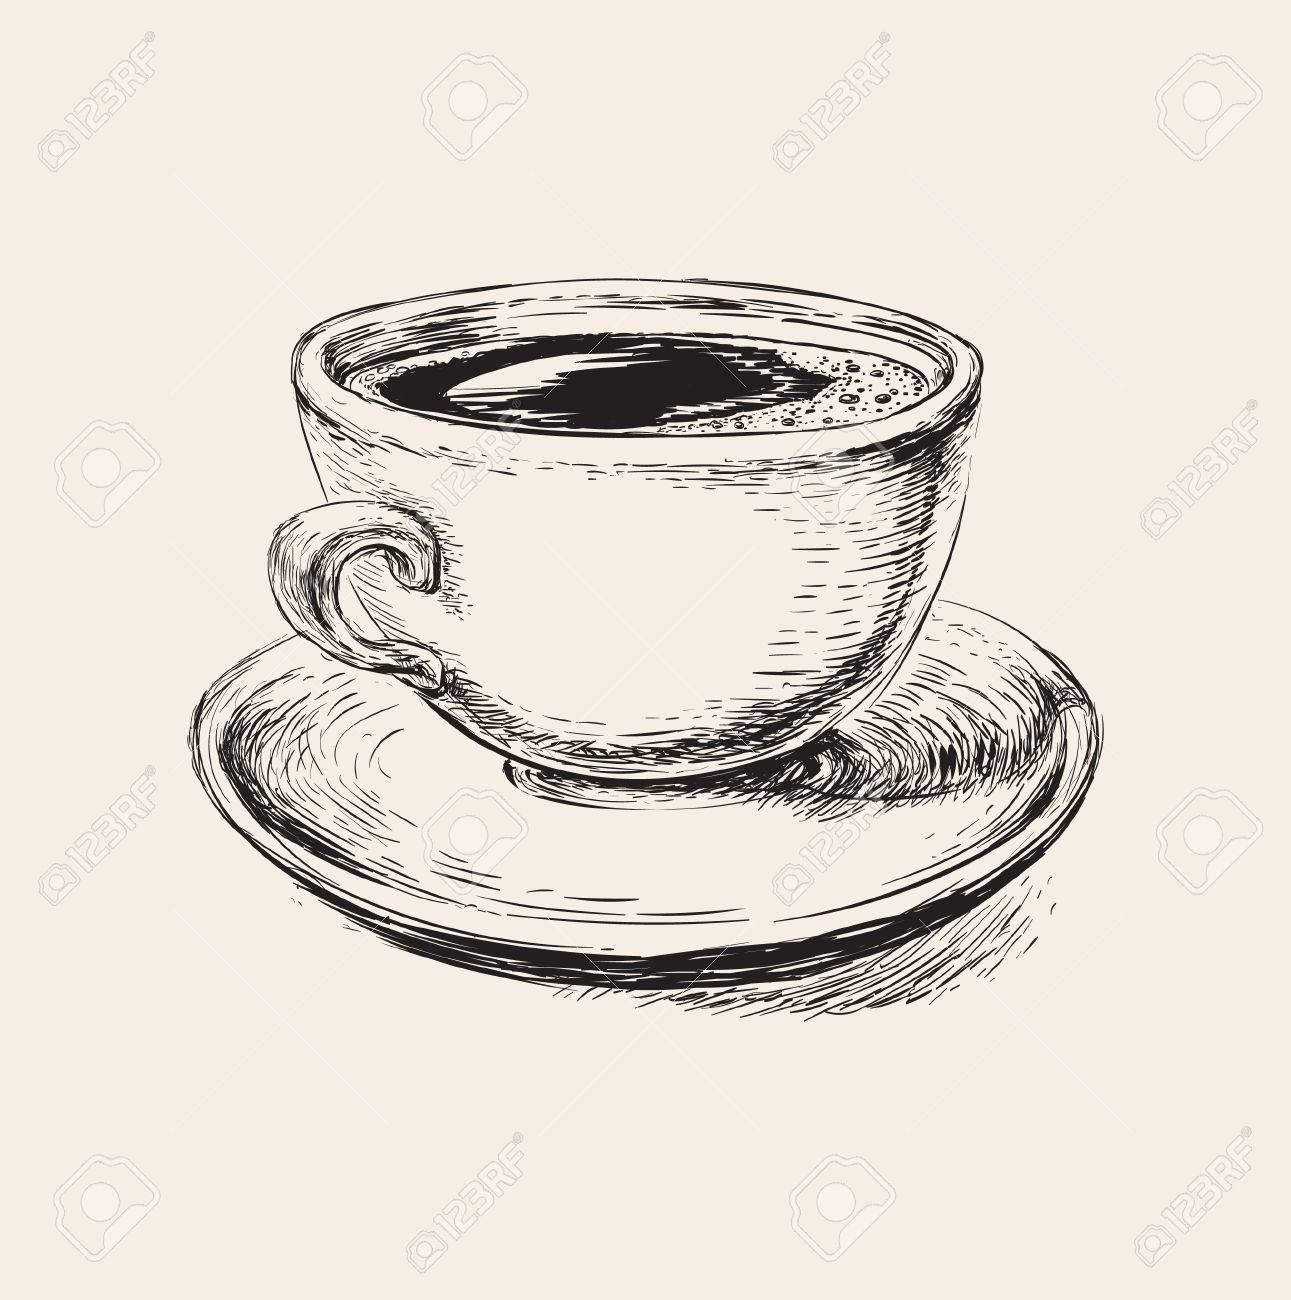 Sketch Coffee Cup Illustration Sketch Coffee Cup Illustration ...